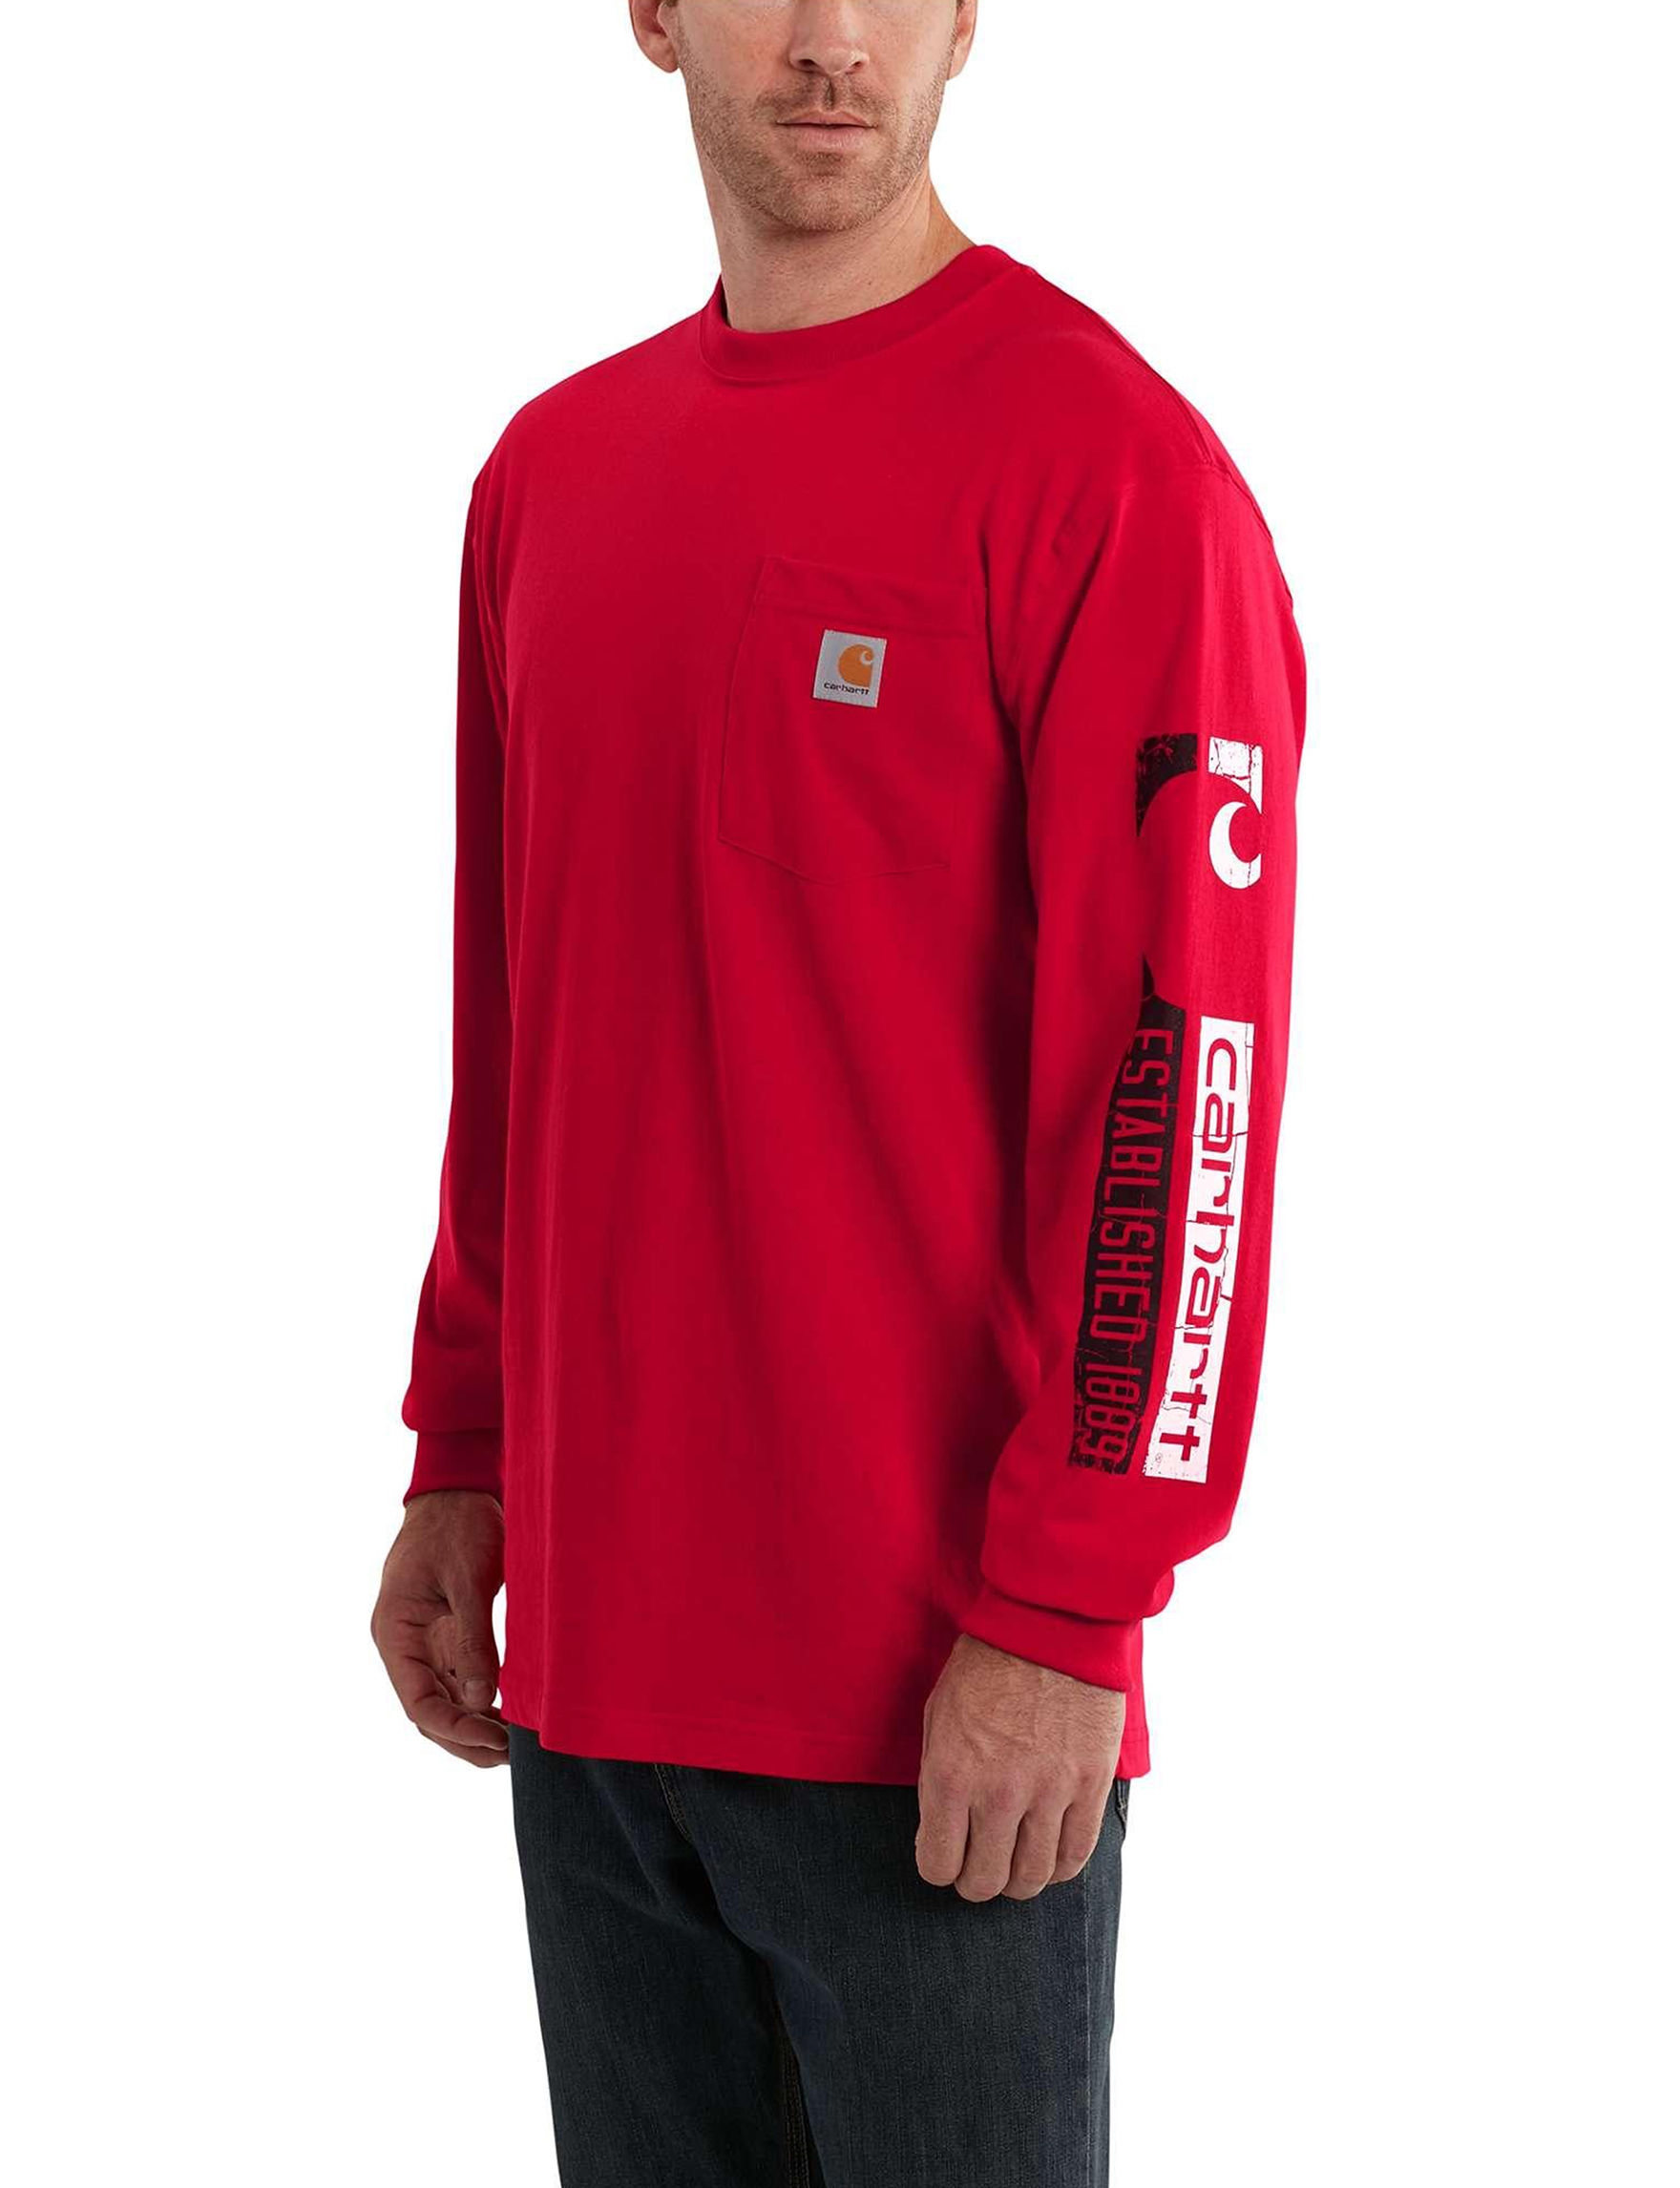 Carhartt Red Tees & Tanks